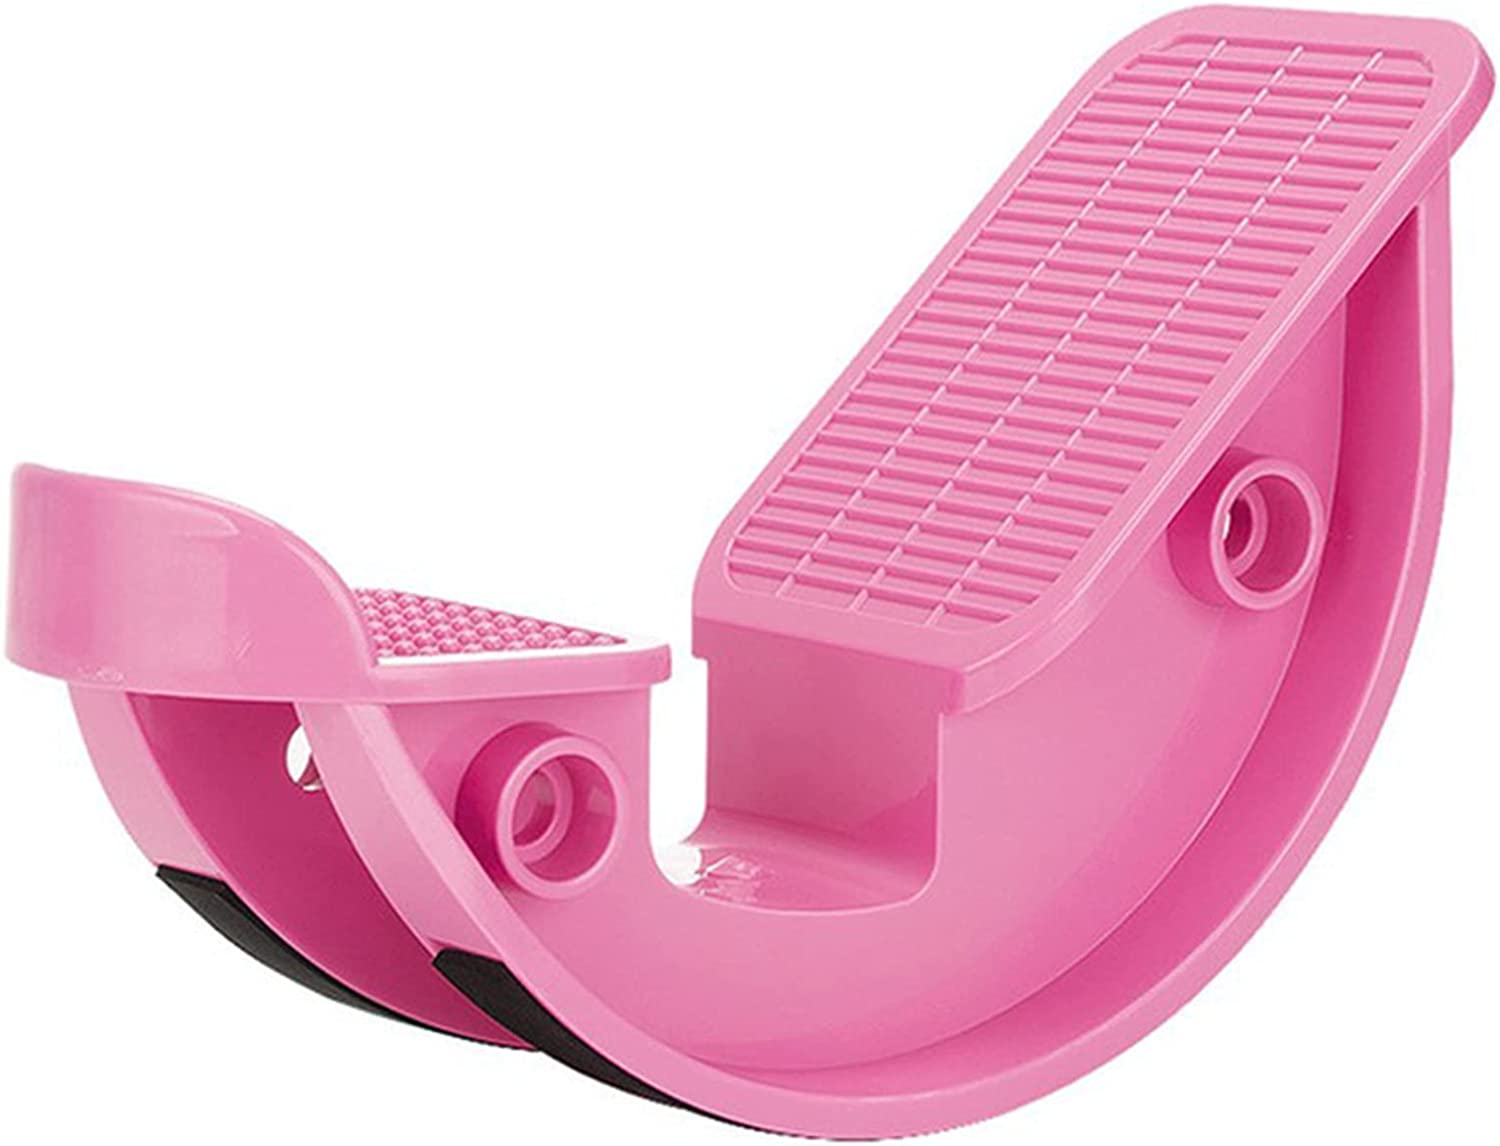 Foot Charlotte Mall Rocker Max 42% OFF Calf Ankle Stretcher Warm-up Leg Muscle Gadget Relax